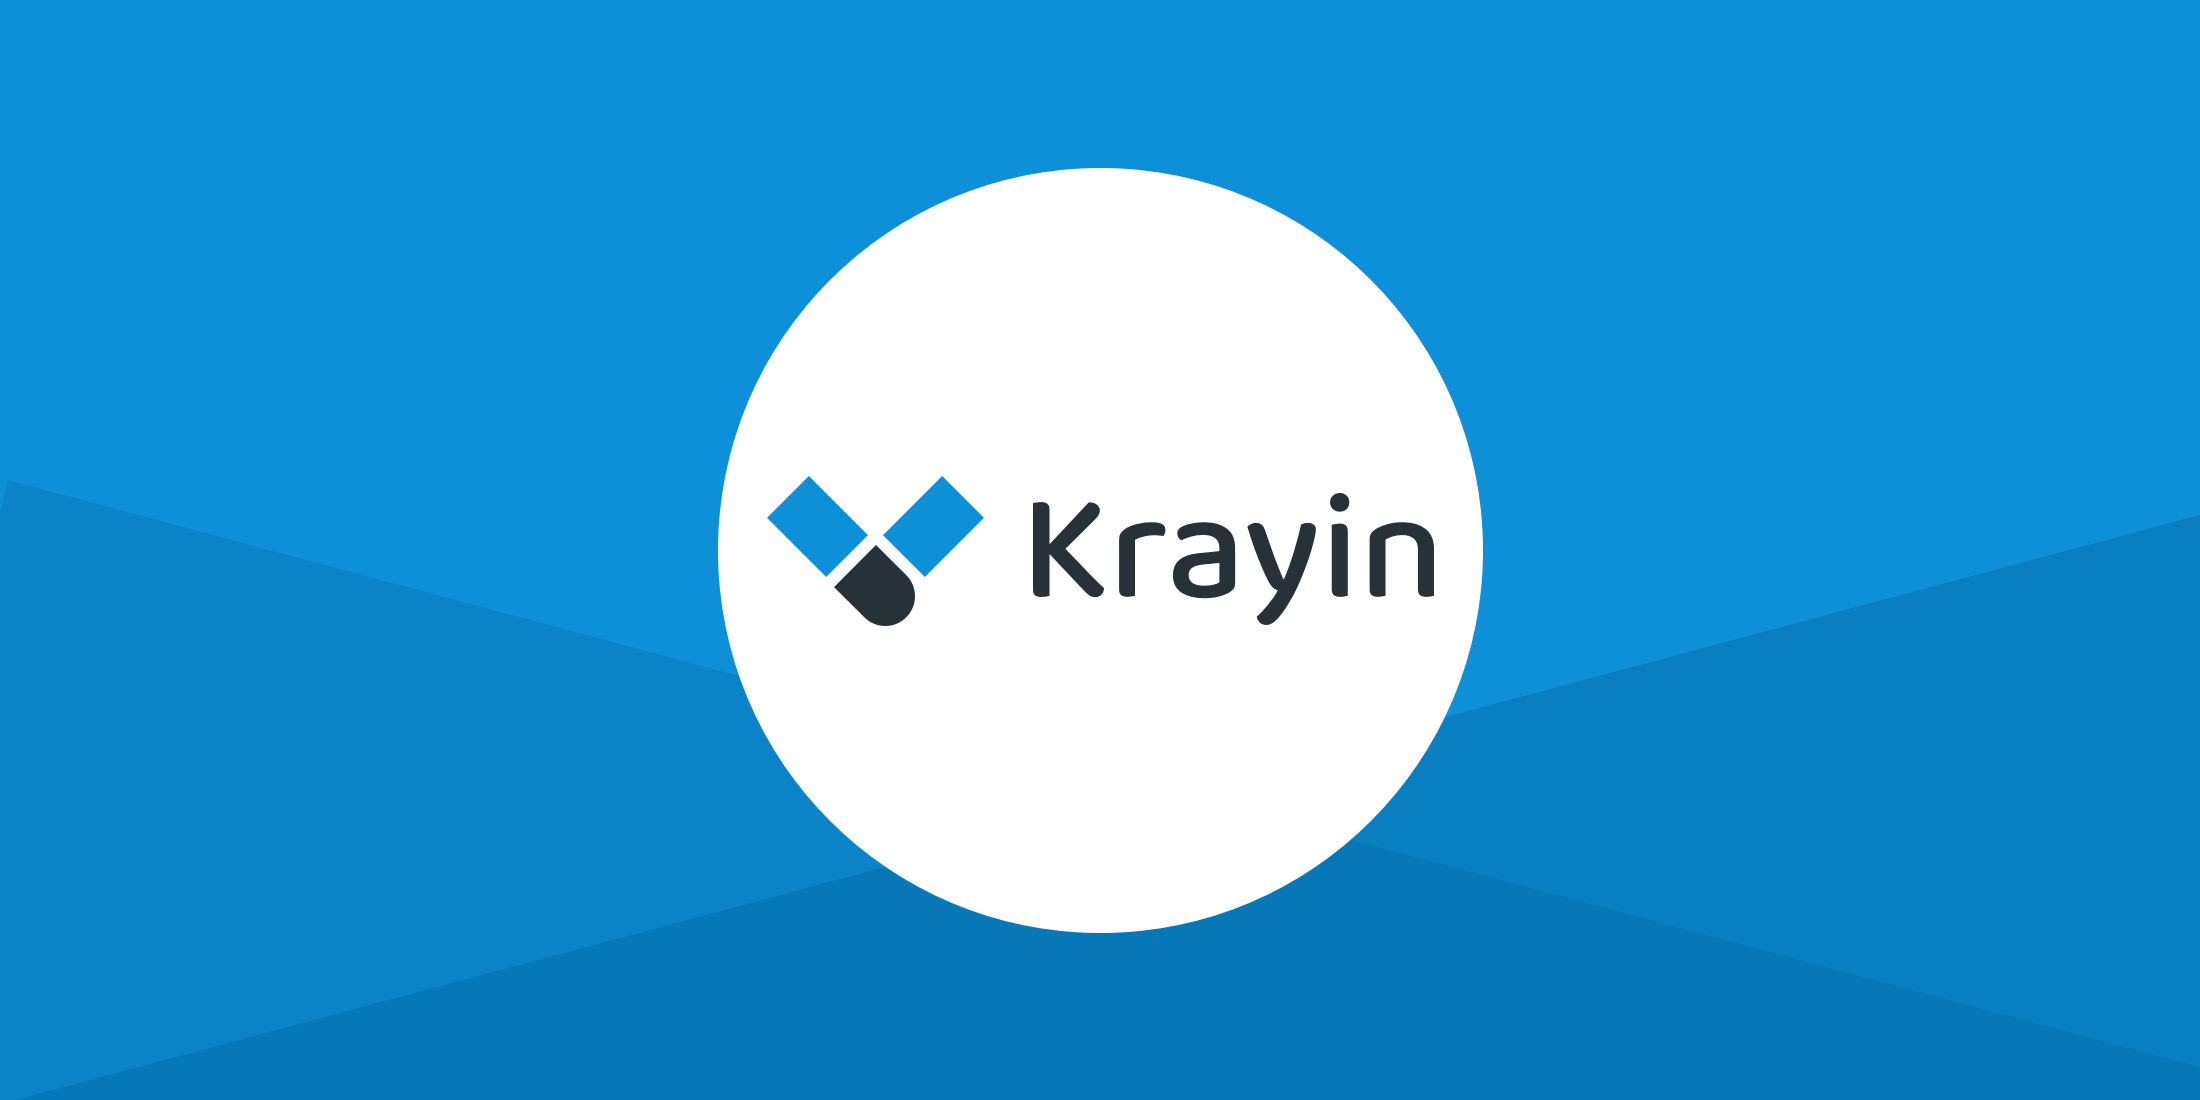 krayin-featured.png